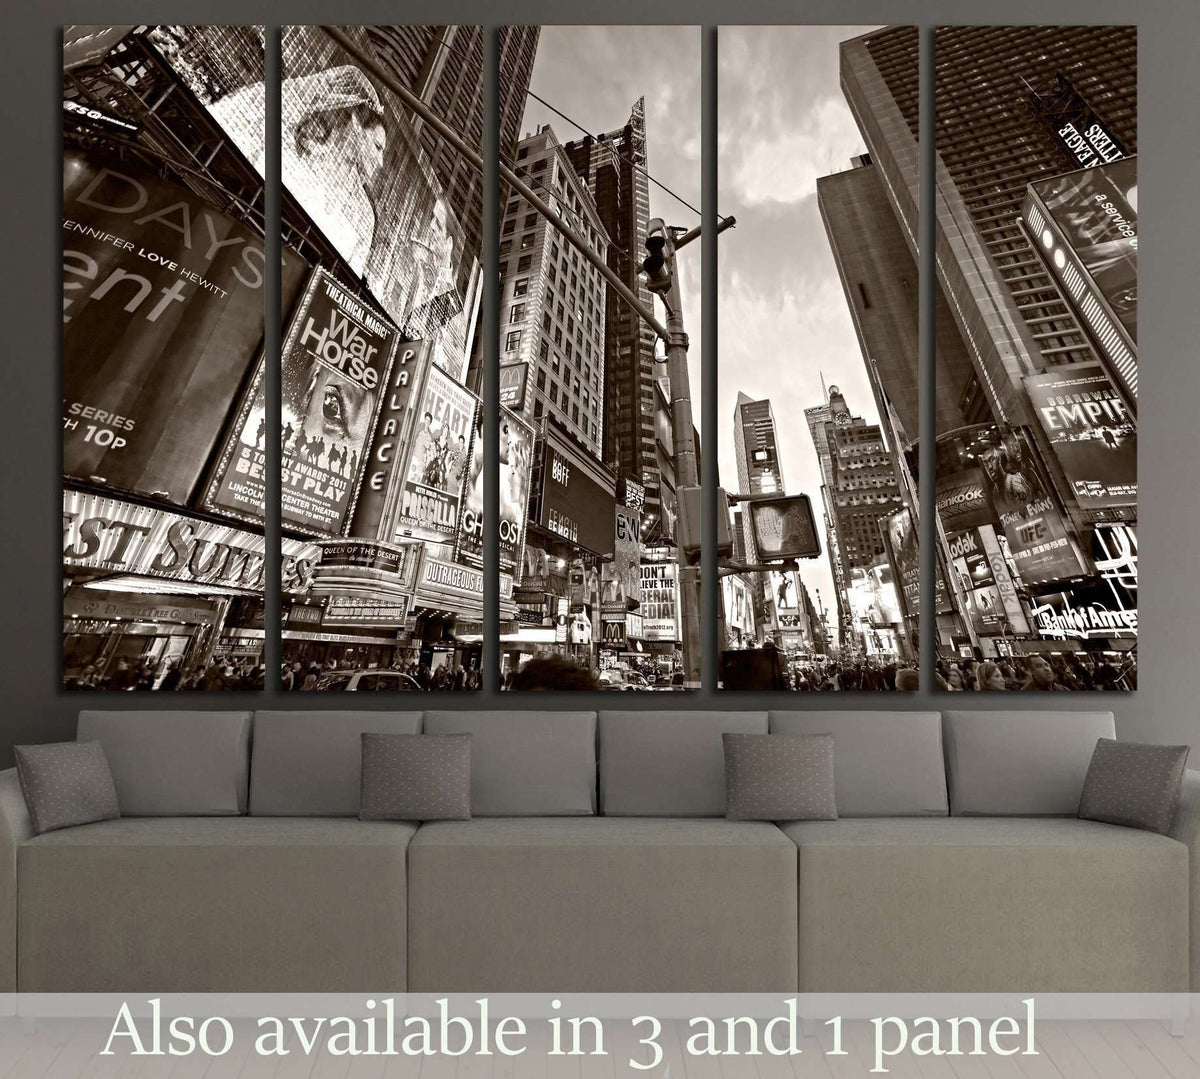 Ny Manhattan: Times Square, Broadway Theaters And Animated LED Signs